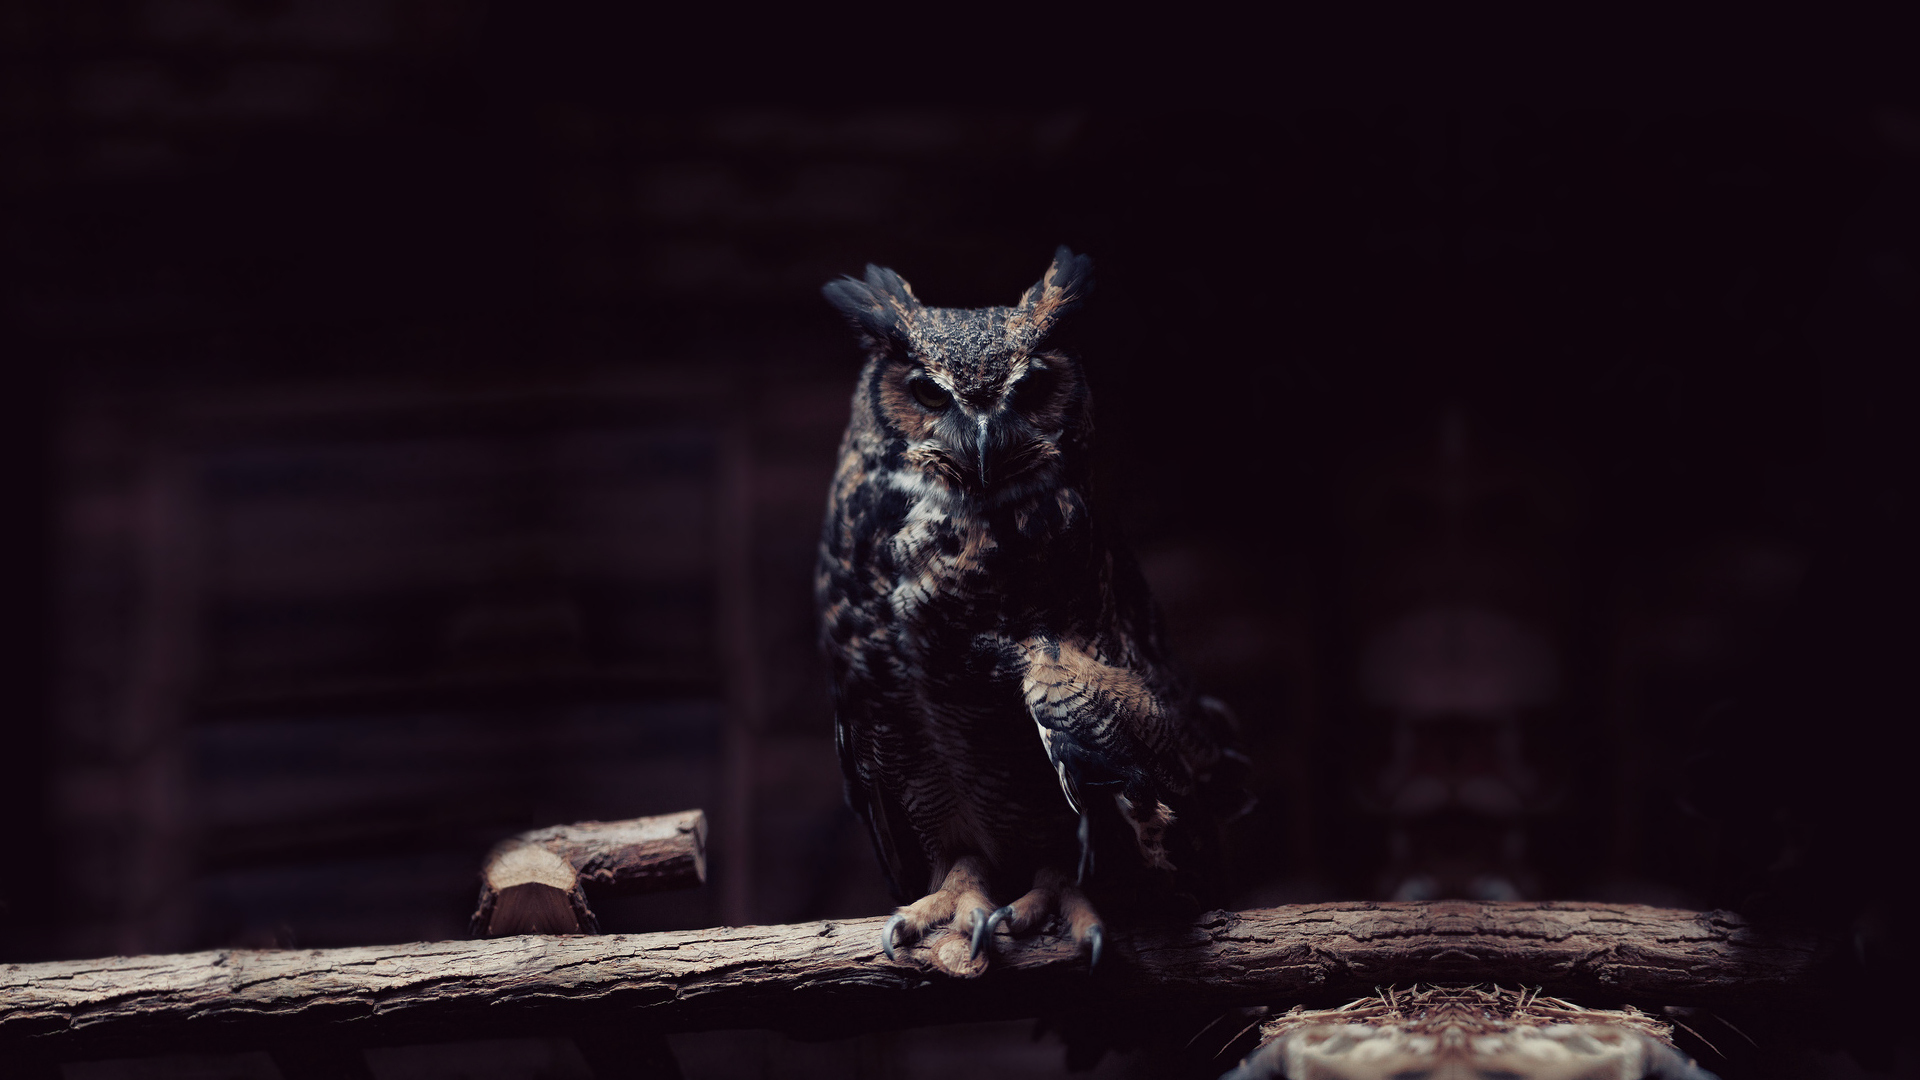 Boy Smoking Wallpapers Quotes Download Black Owl Wallpaper Gallery